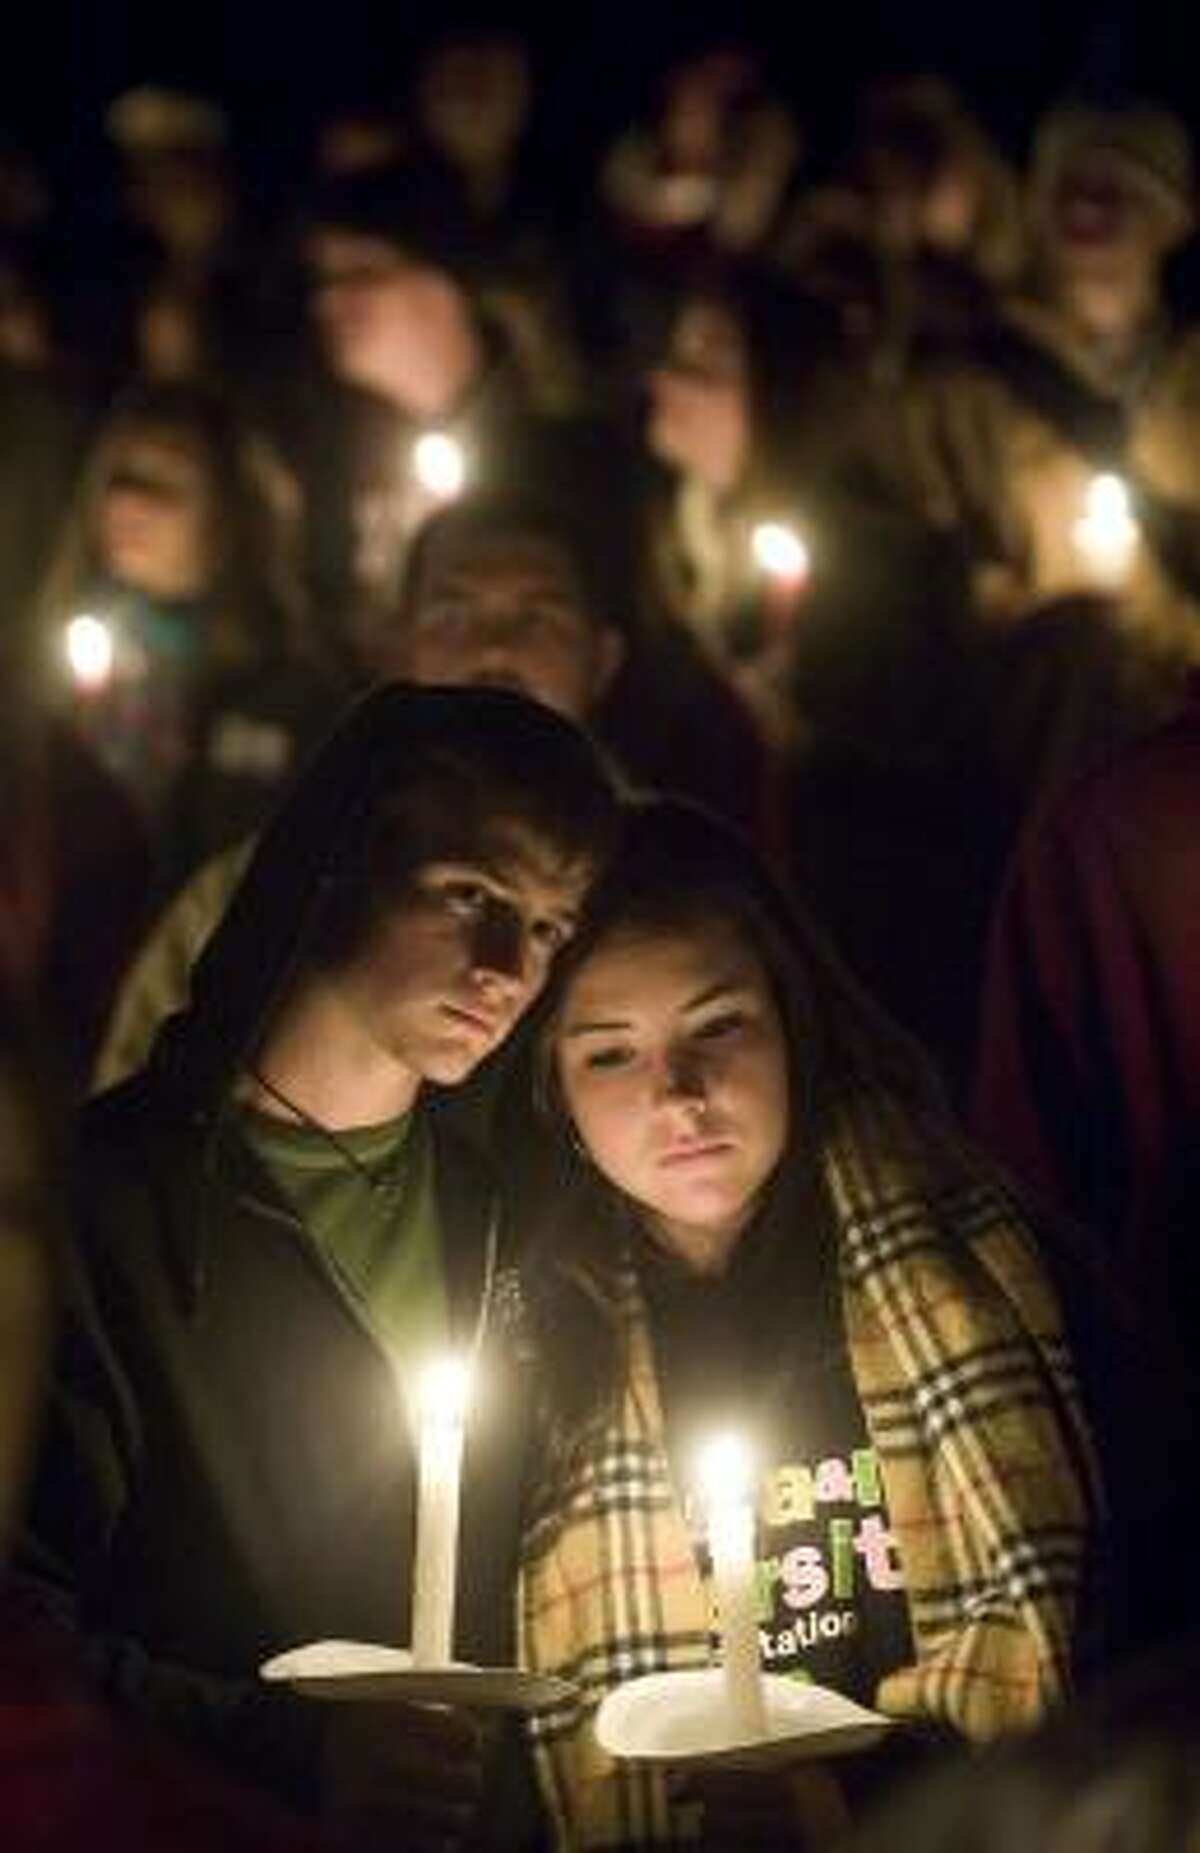 Texas A&M students Tyler Stevenson and Alexandra Brown huddle together during a candlelight memorial service in observance of the 10th anniversary of the 1999 Bonfire collapse.